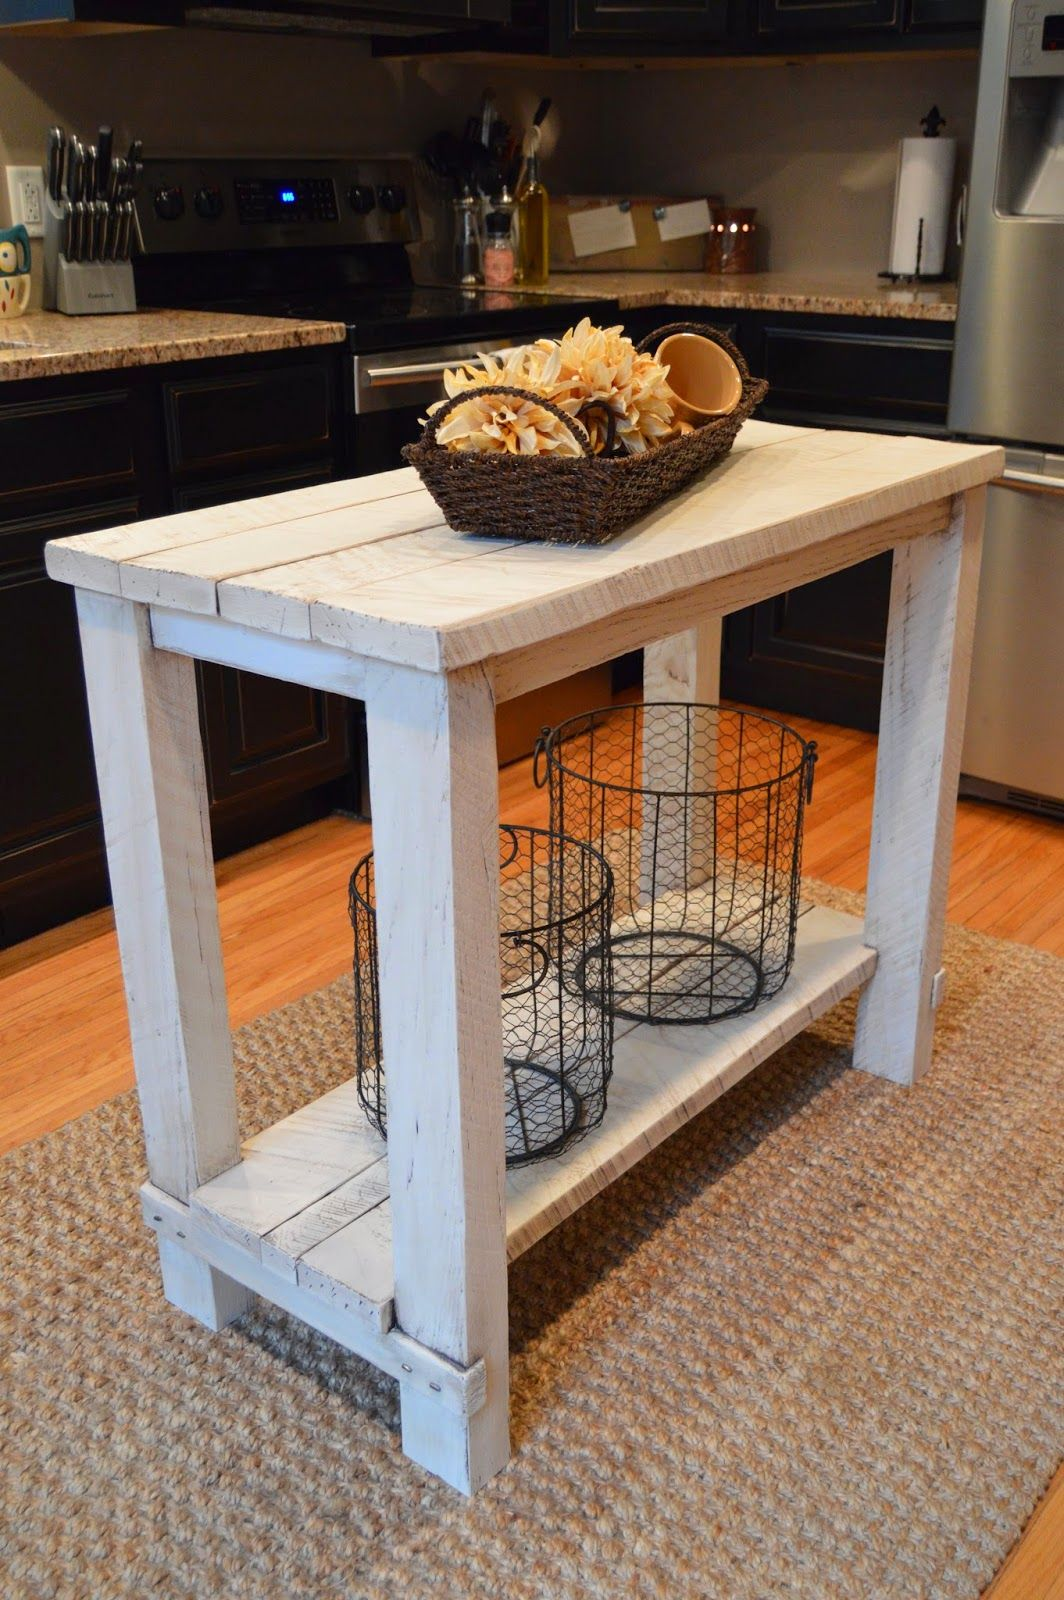 Pallet Kitchen Island Plans 15 Gorgeous Diy Kitchen Islands For Every Budget | Идеи